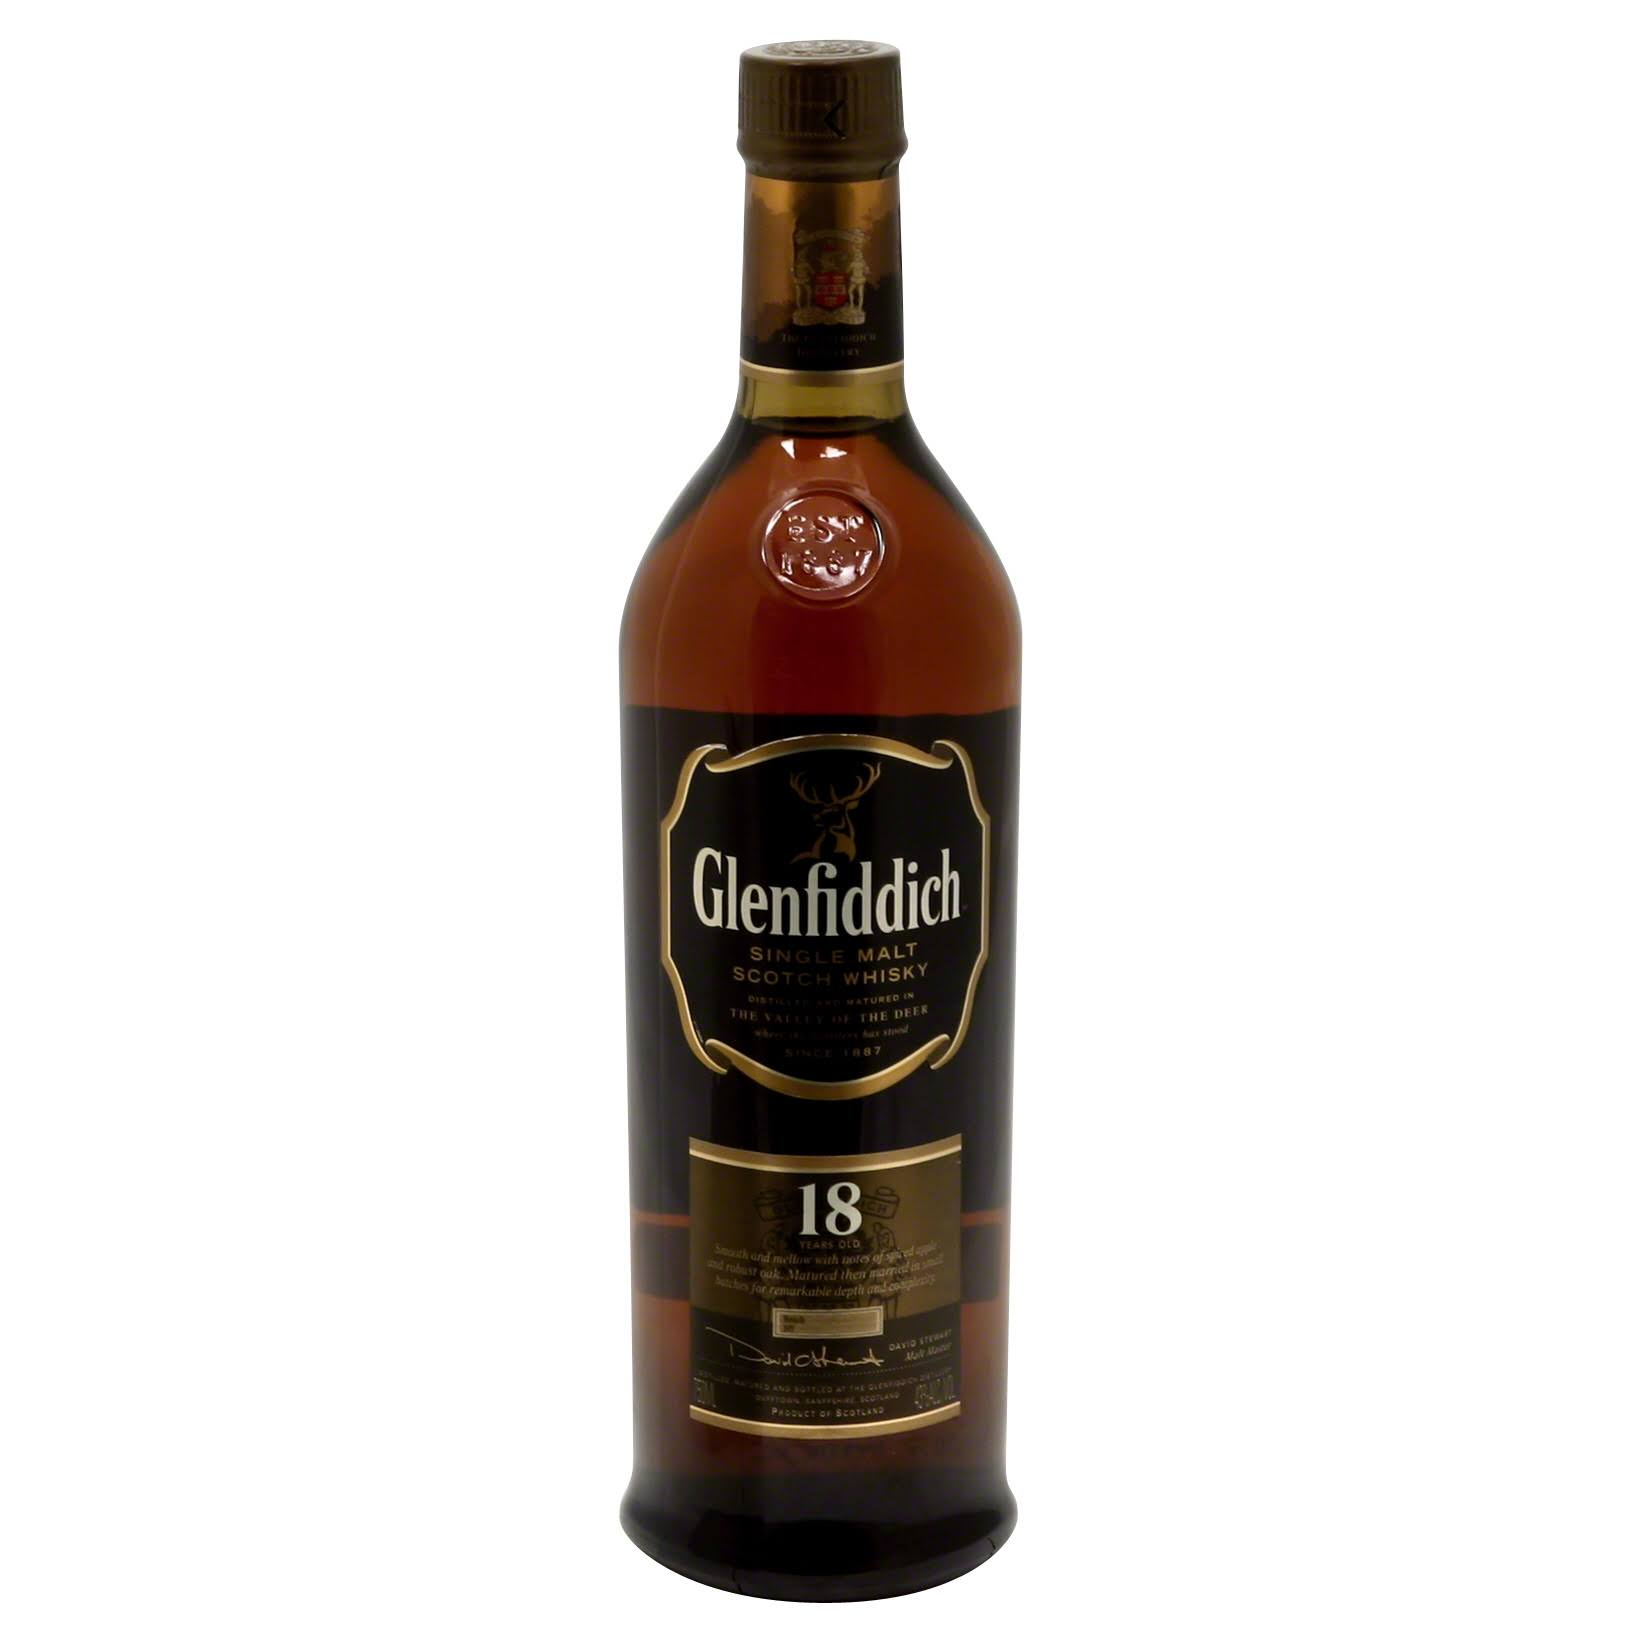 Glenfiddich 18 Year Single Malt Scotch Whiskey - 750 ml bottle